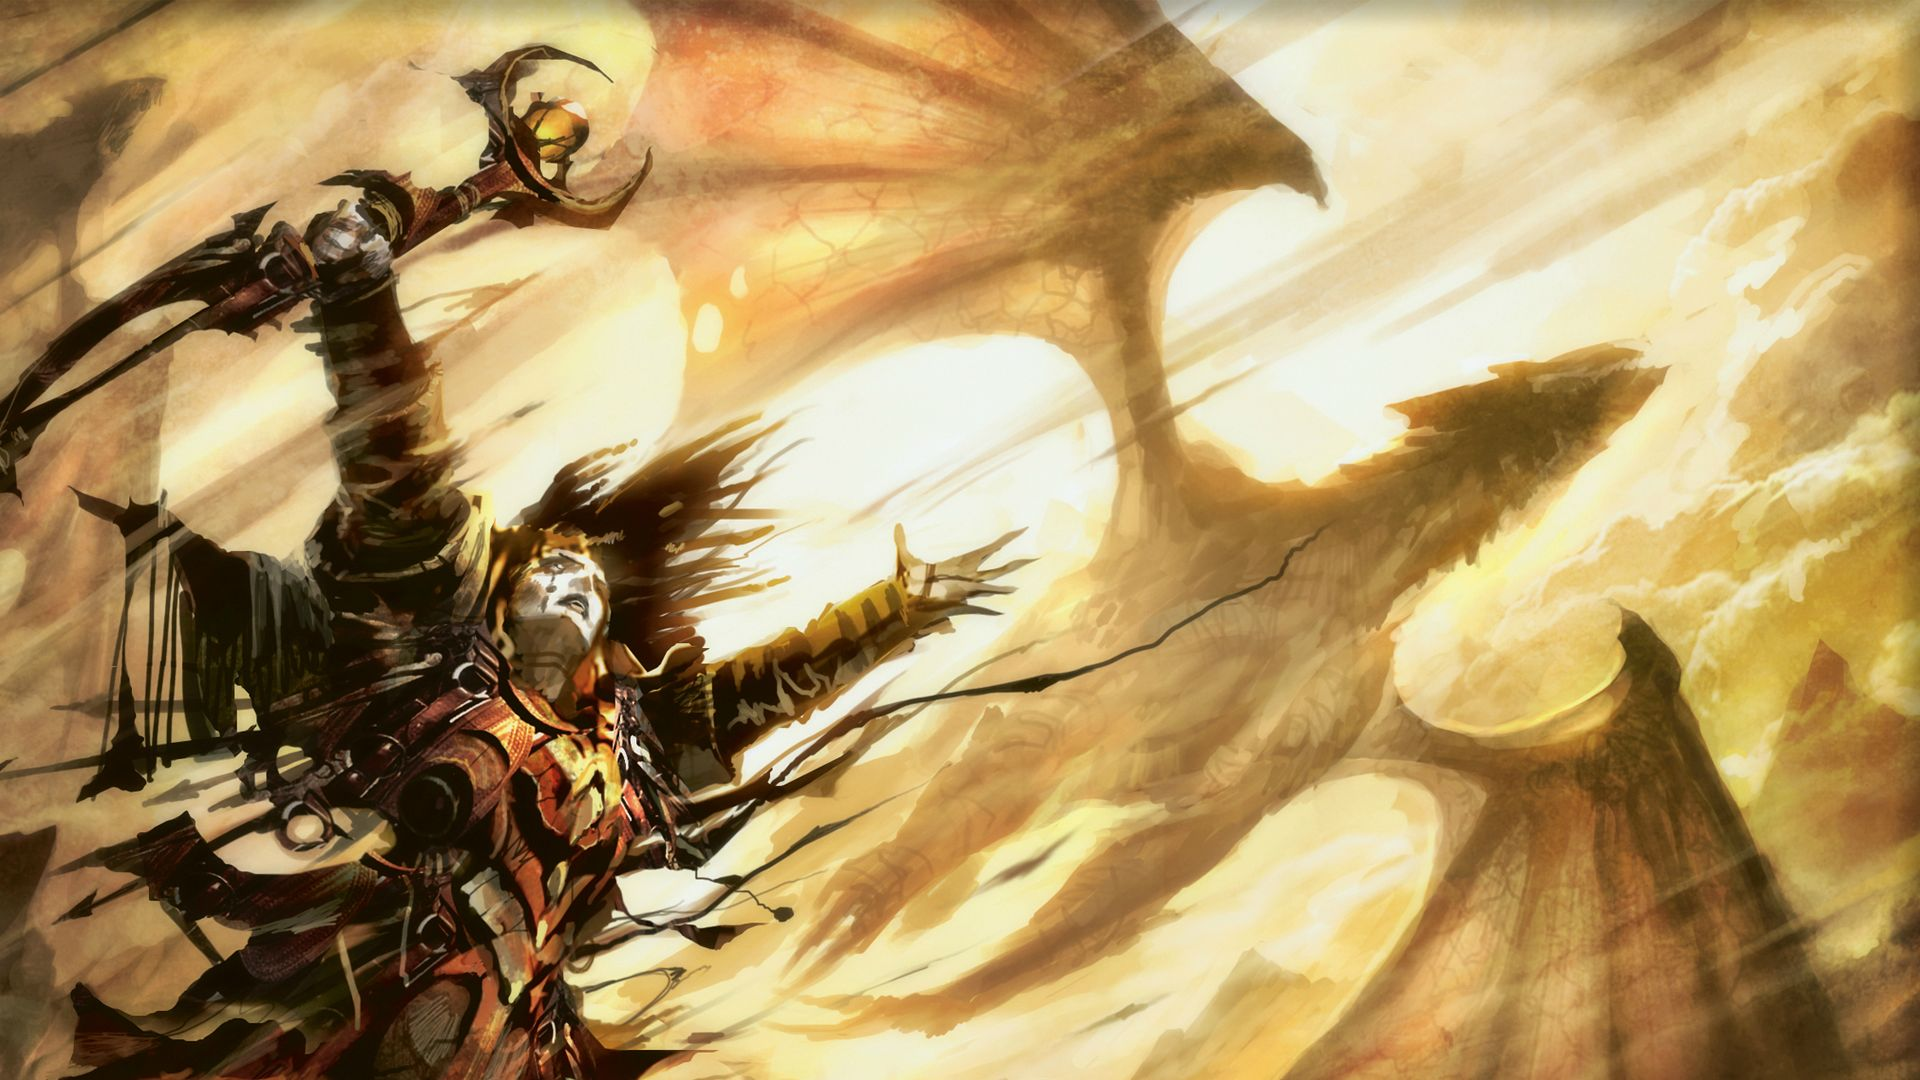 Magic The Gathering 1105305 Hd Wallpaper Backgrounds Download